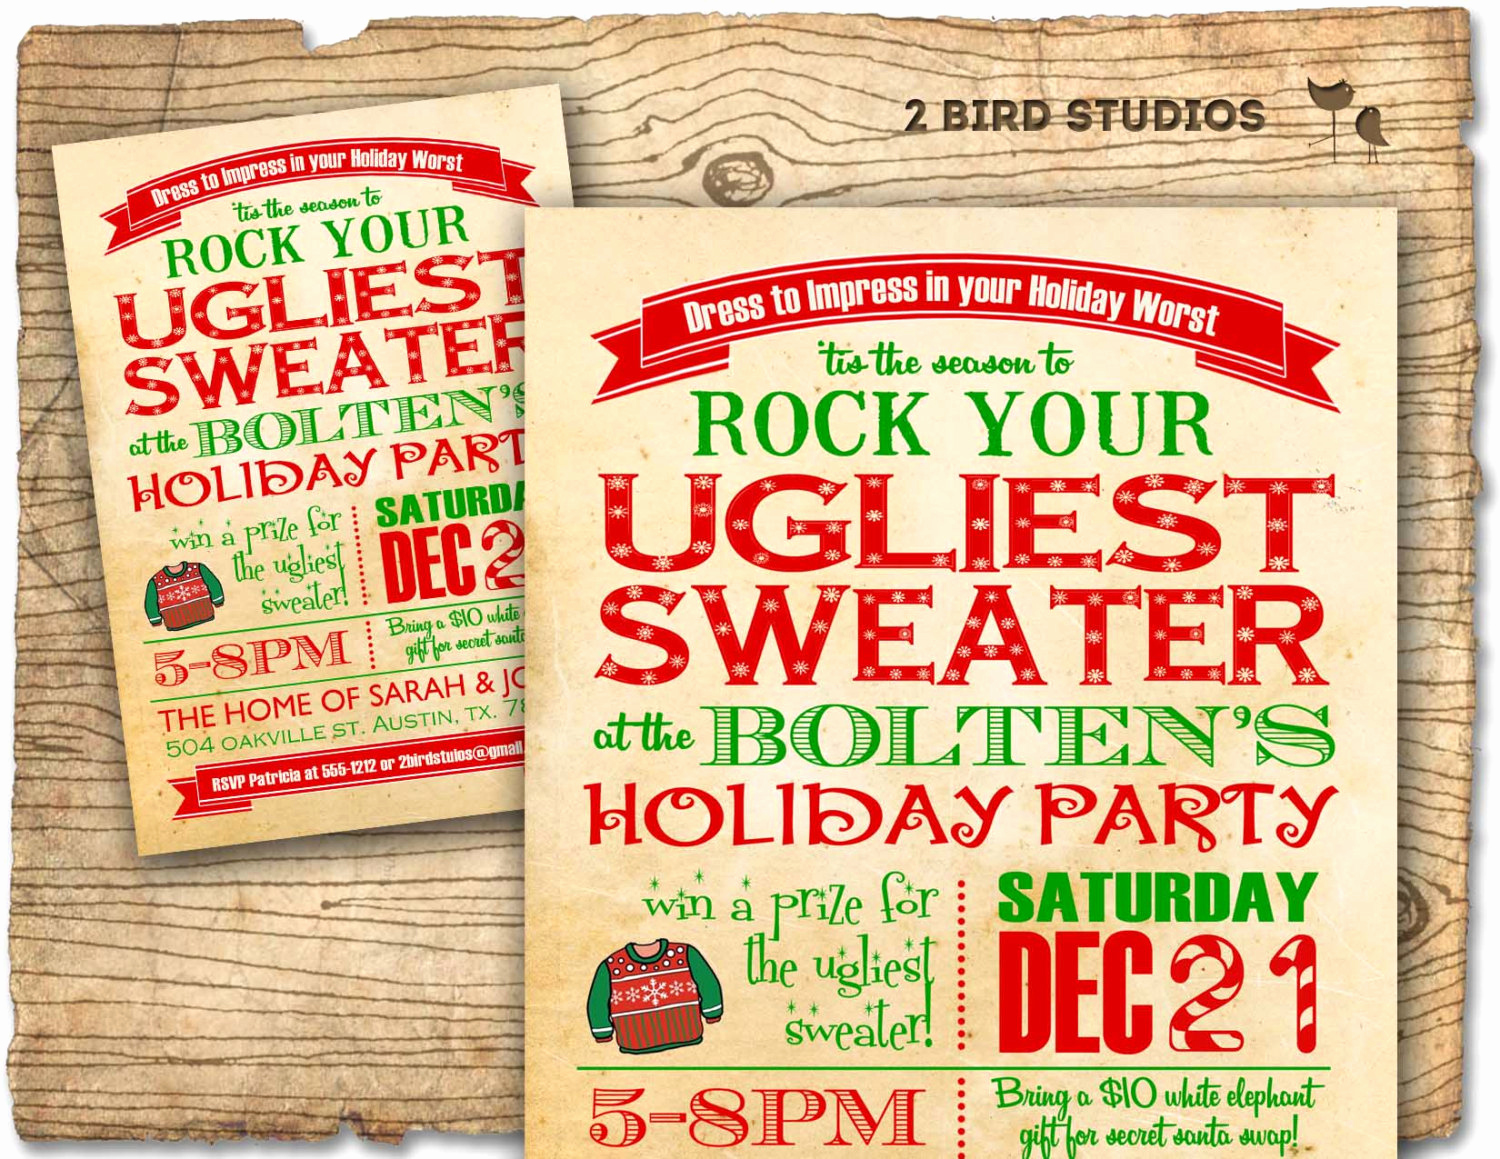 Ugly Sweater Christmas Party Invitation Inspirational Holiday Party Invitation Ugly Sweater Christmas Party